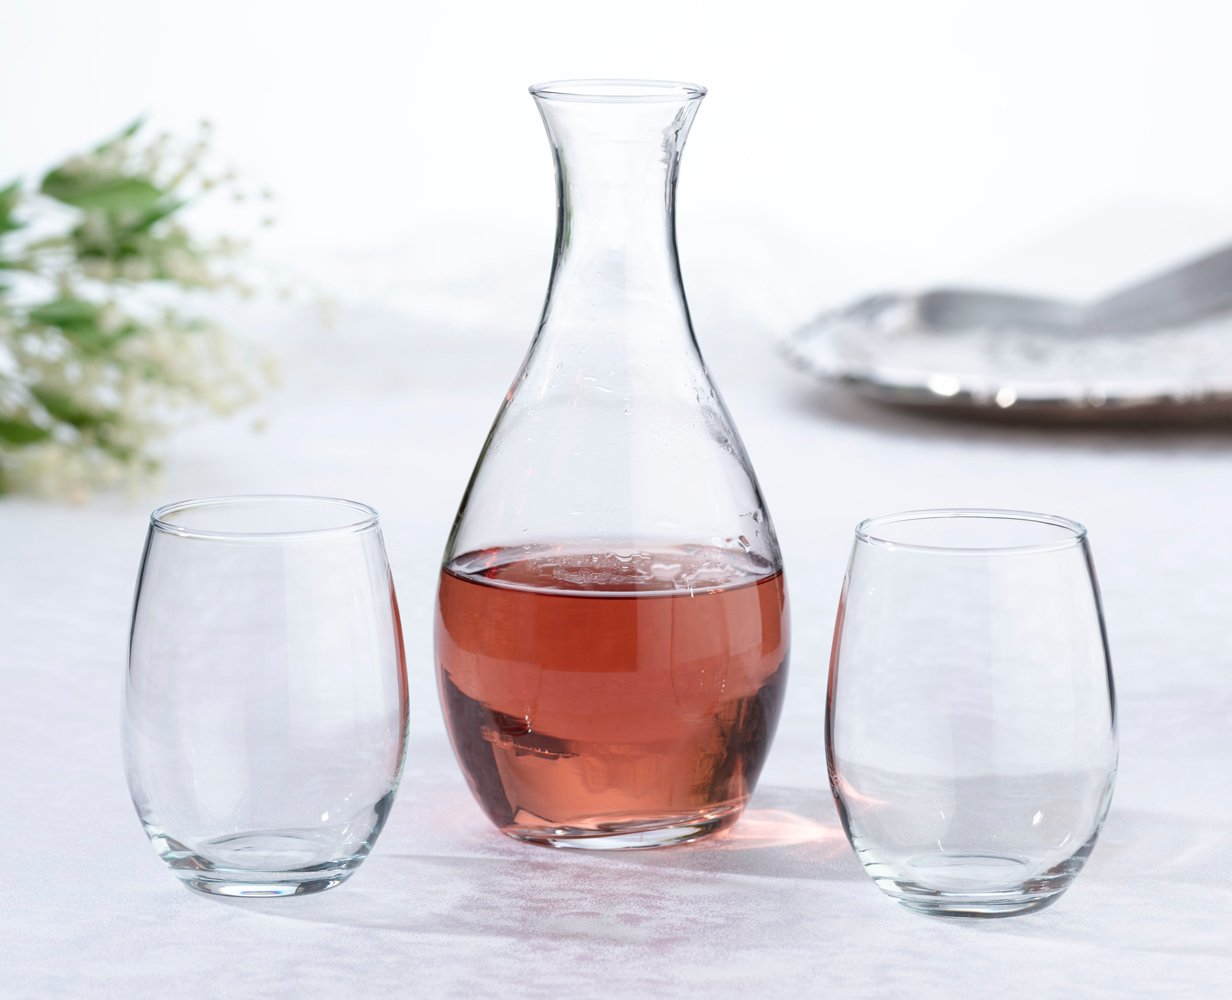 Decanter & 2 Stemless Wine Glasses Ceremony Set